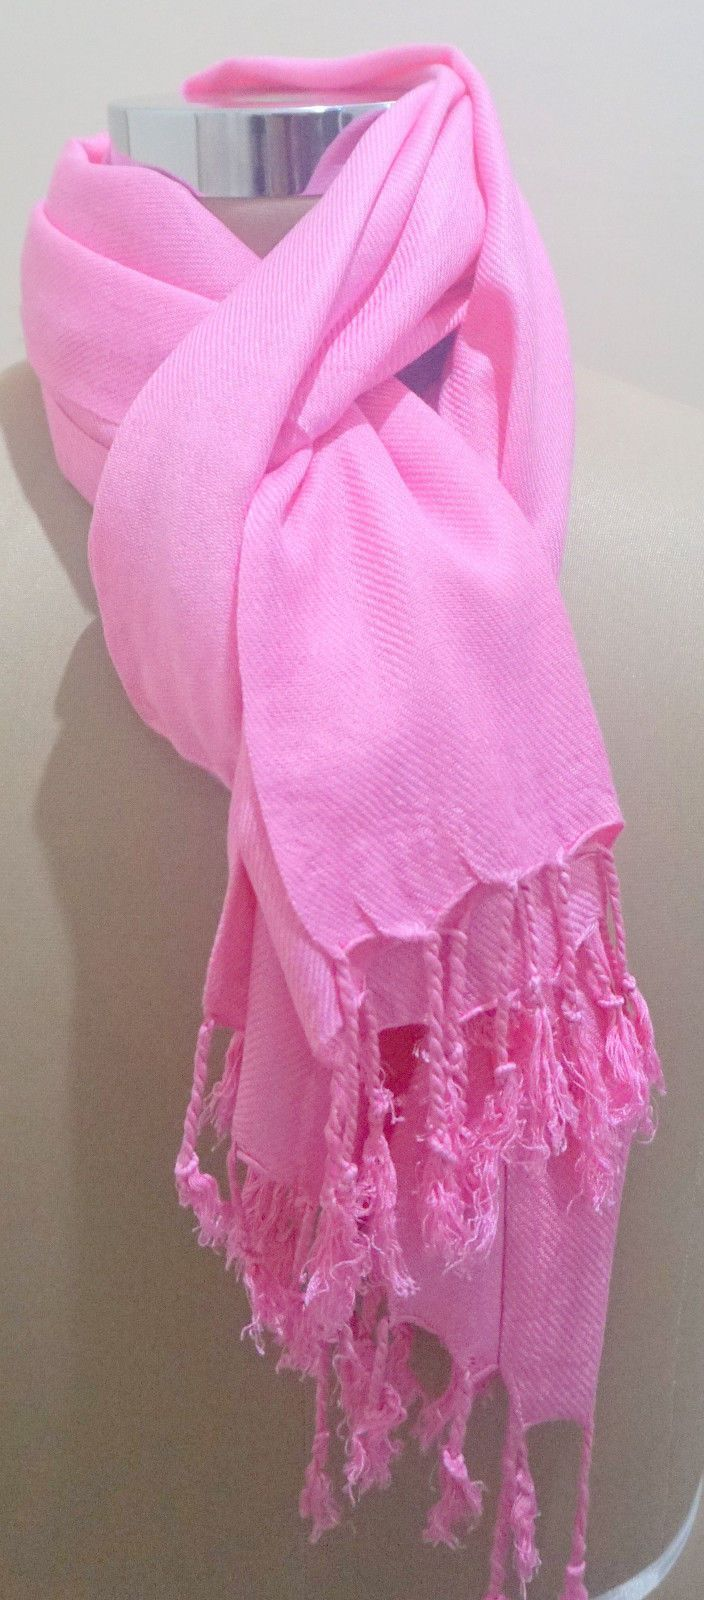 ed9e636ea Plain Pashmina Scarf Shawl Stole Wrap High Quality Many Colours 100% Viscose